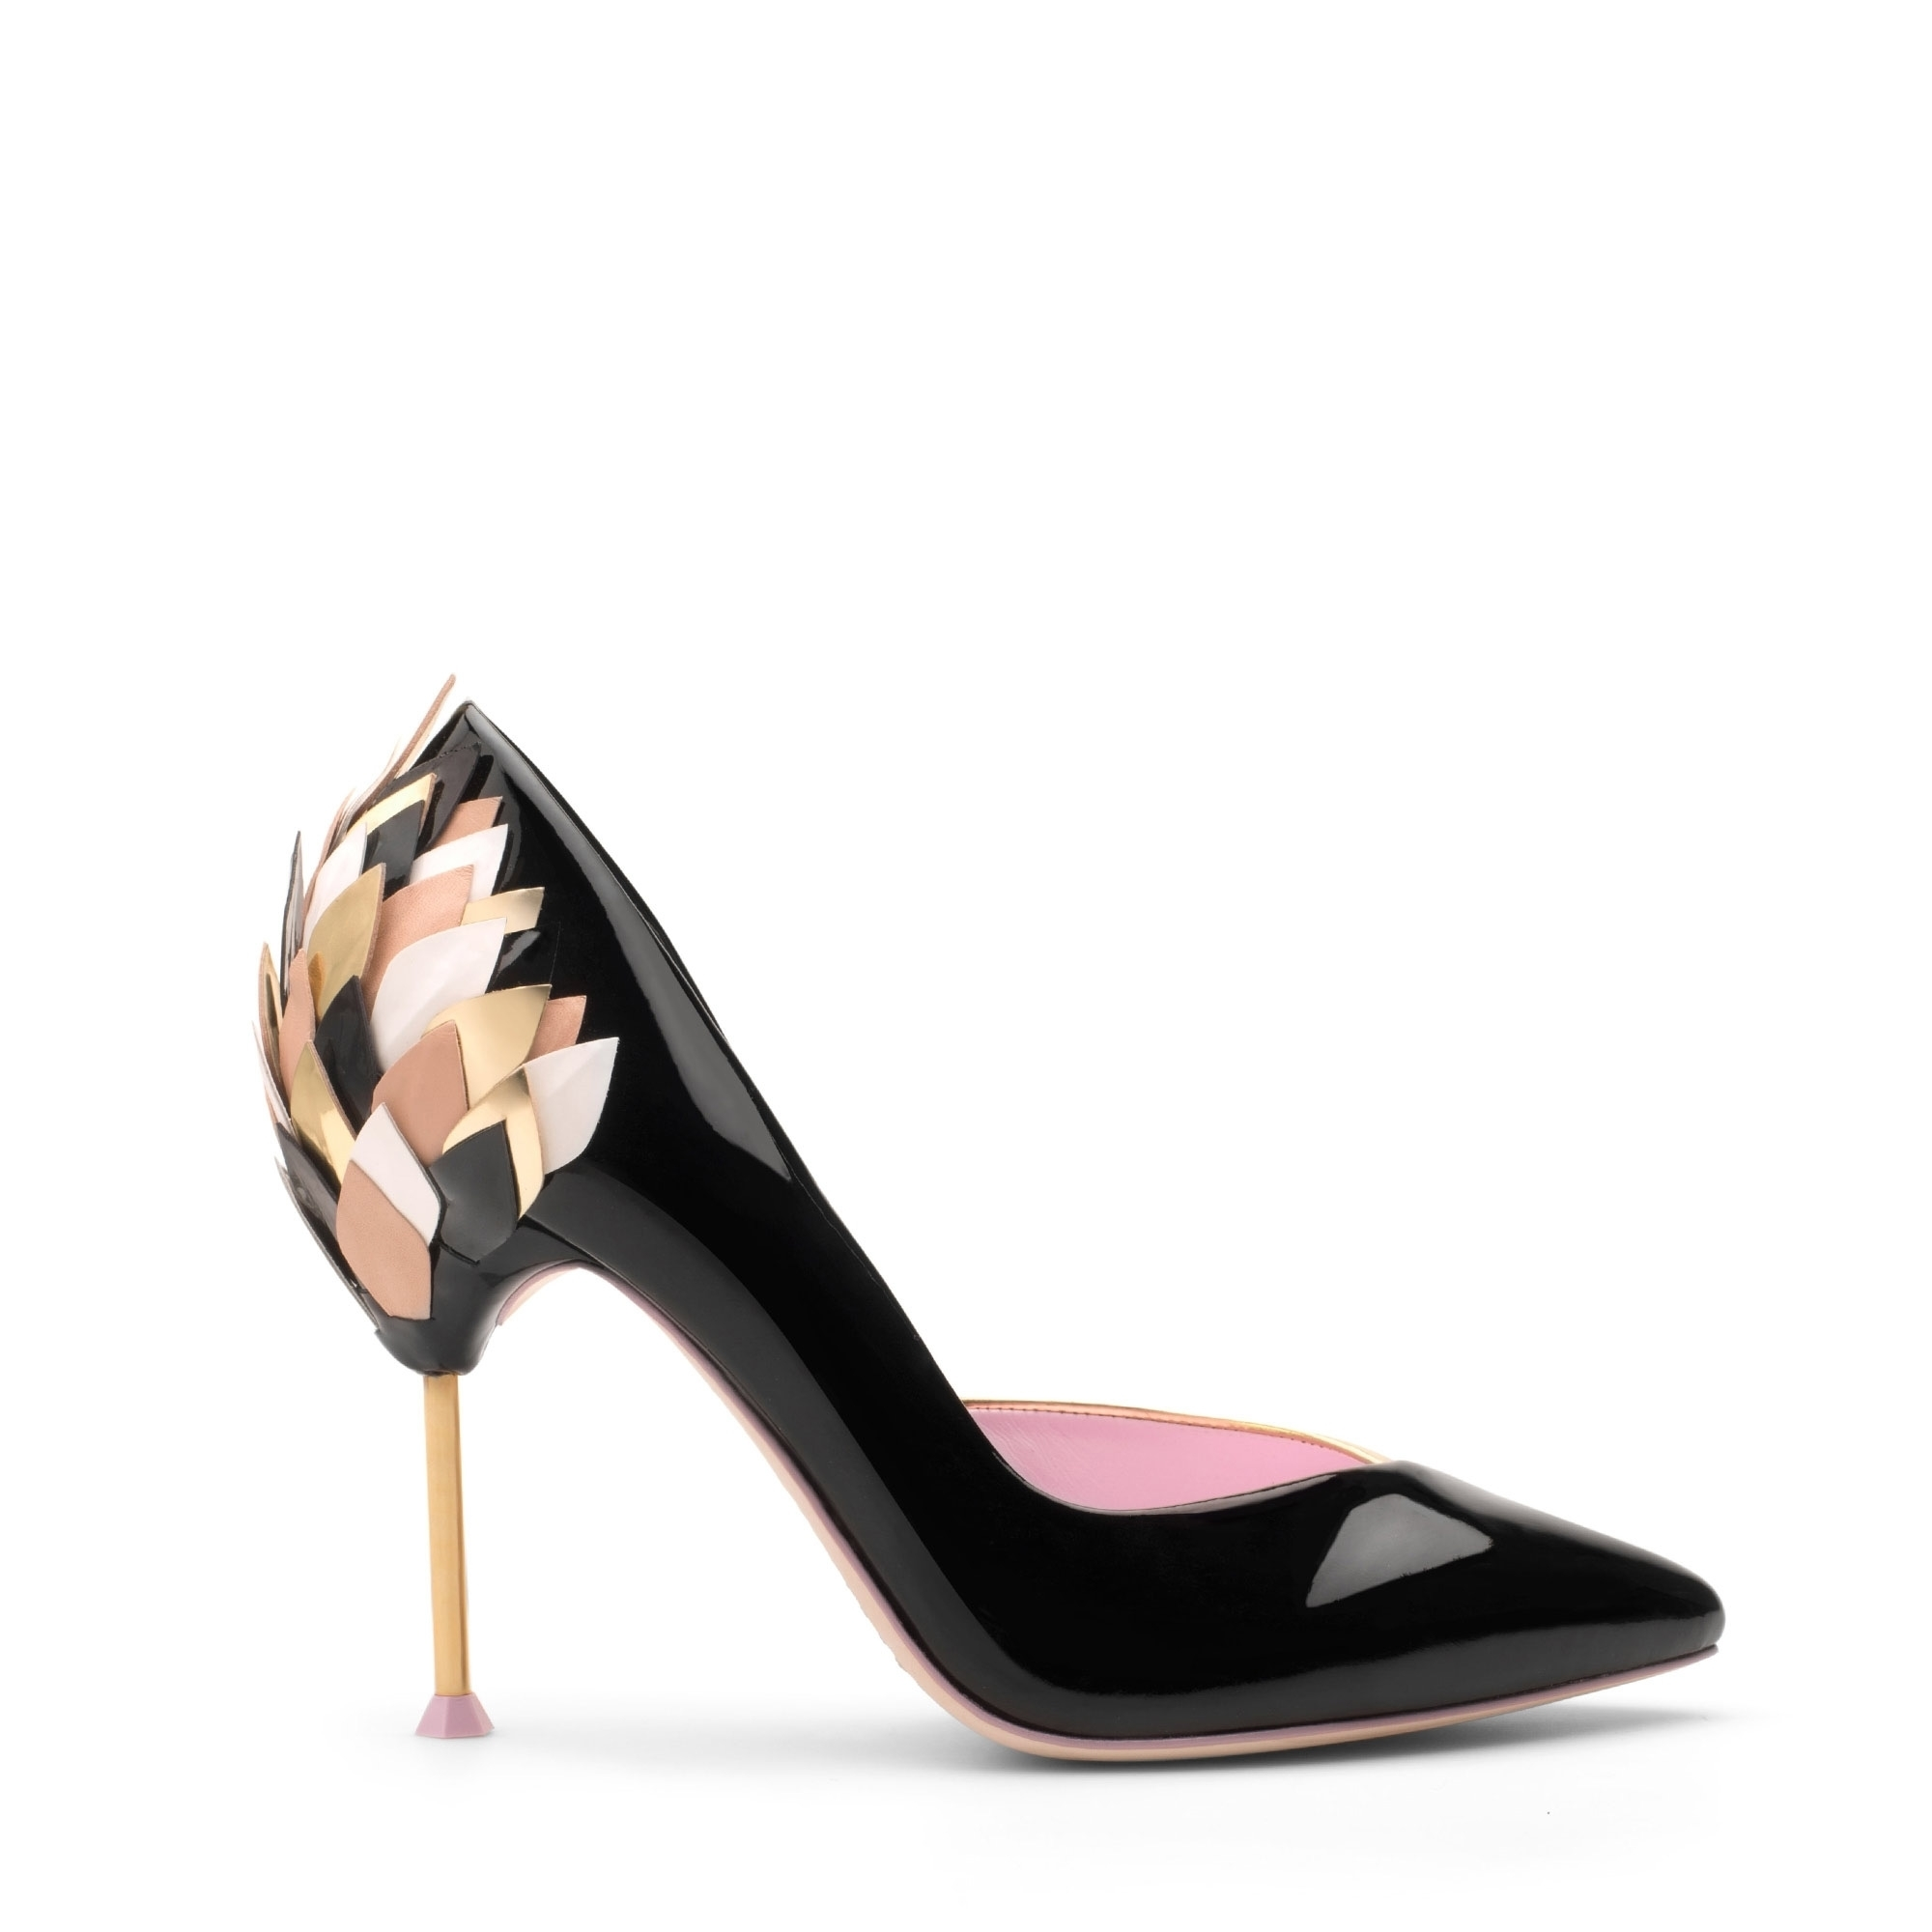 b1f1021007e PIAGETTI Flower High Heel Pump - WOMEN from Fashion Crossover London UK